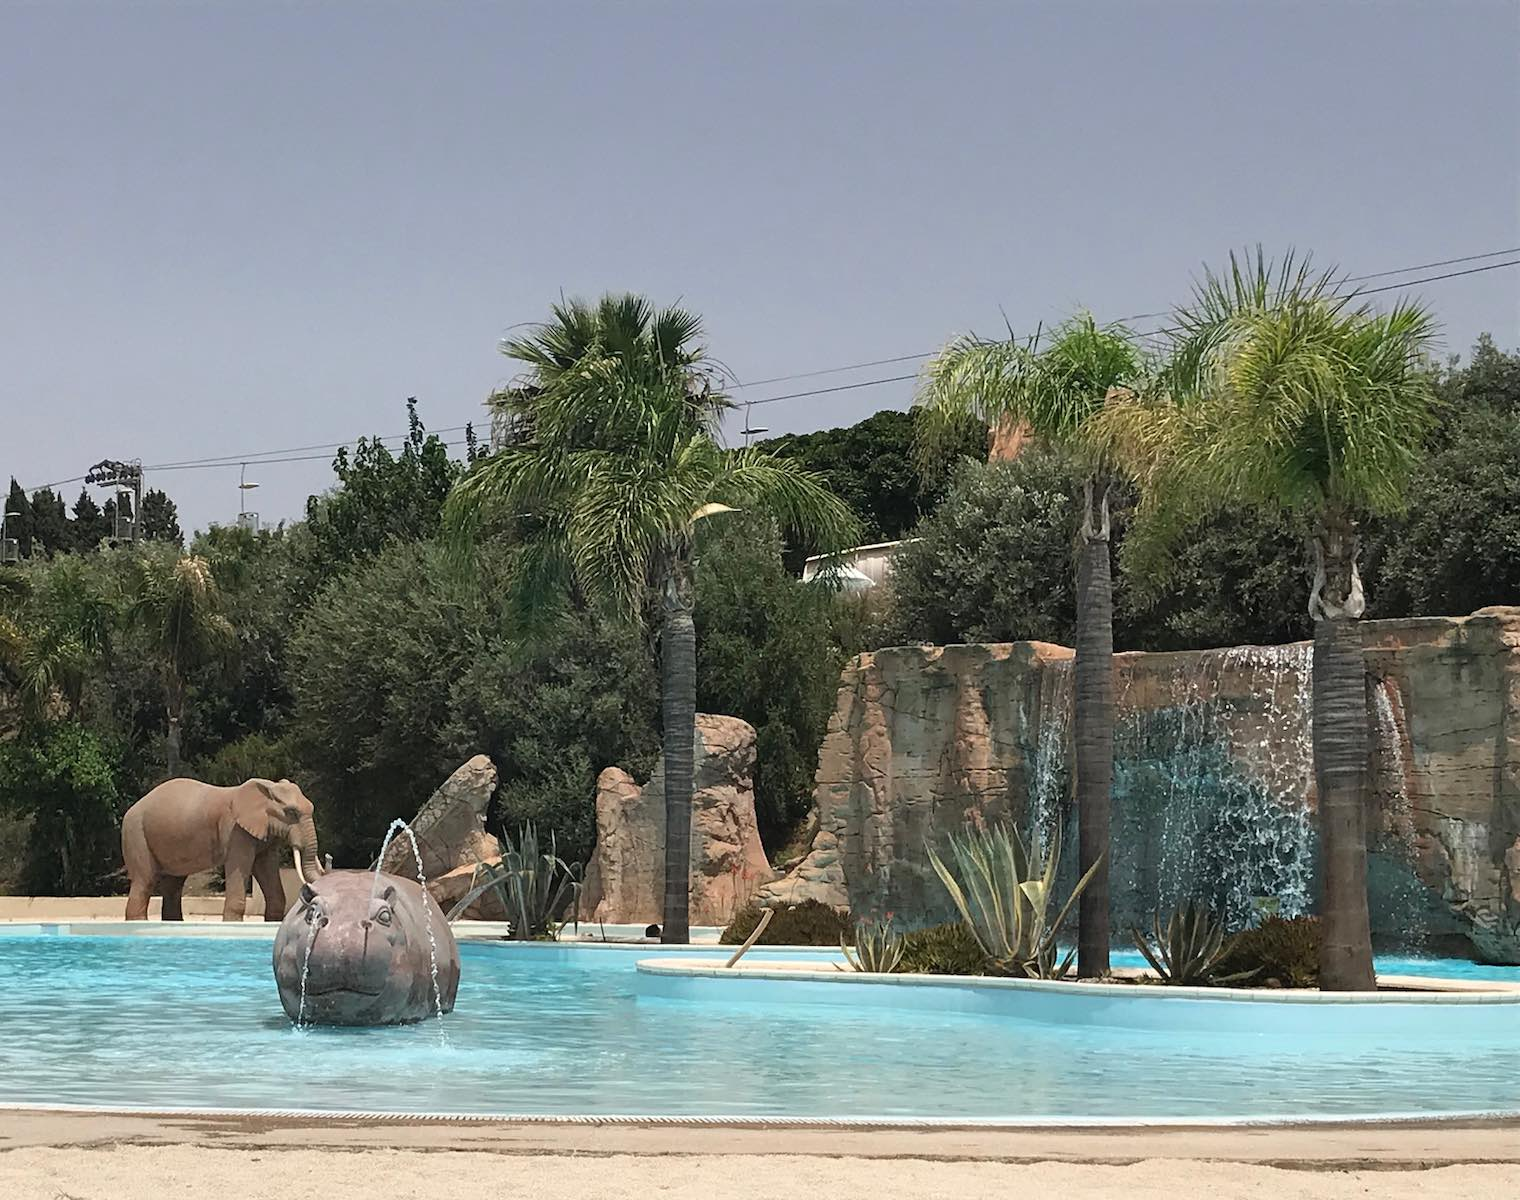 The hippo pool in Etnaland